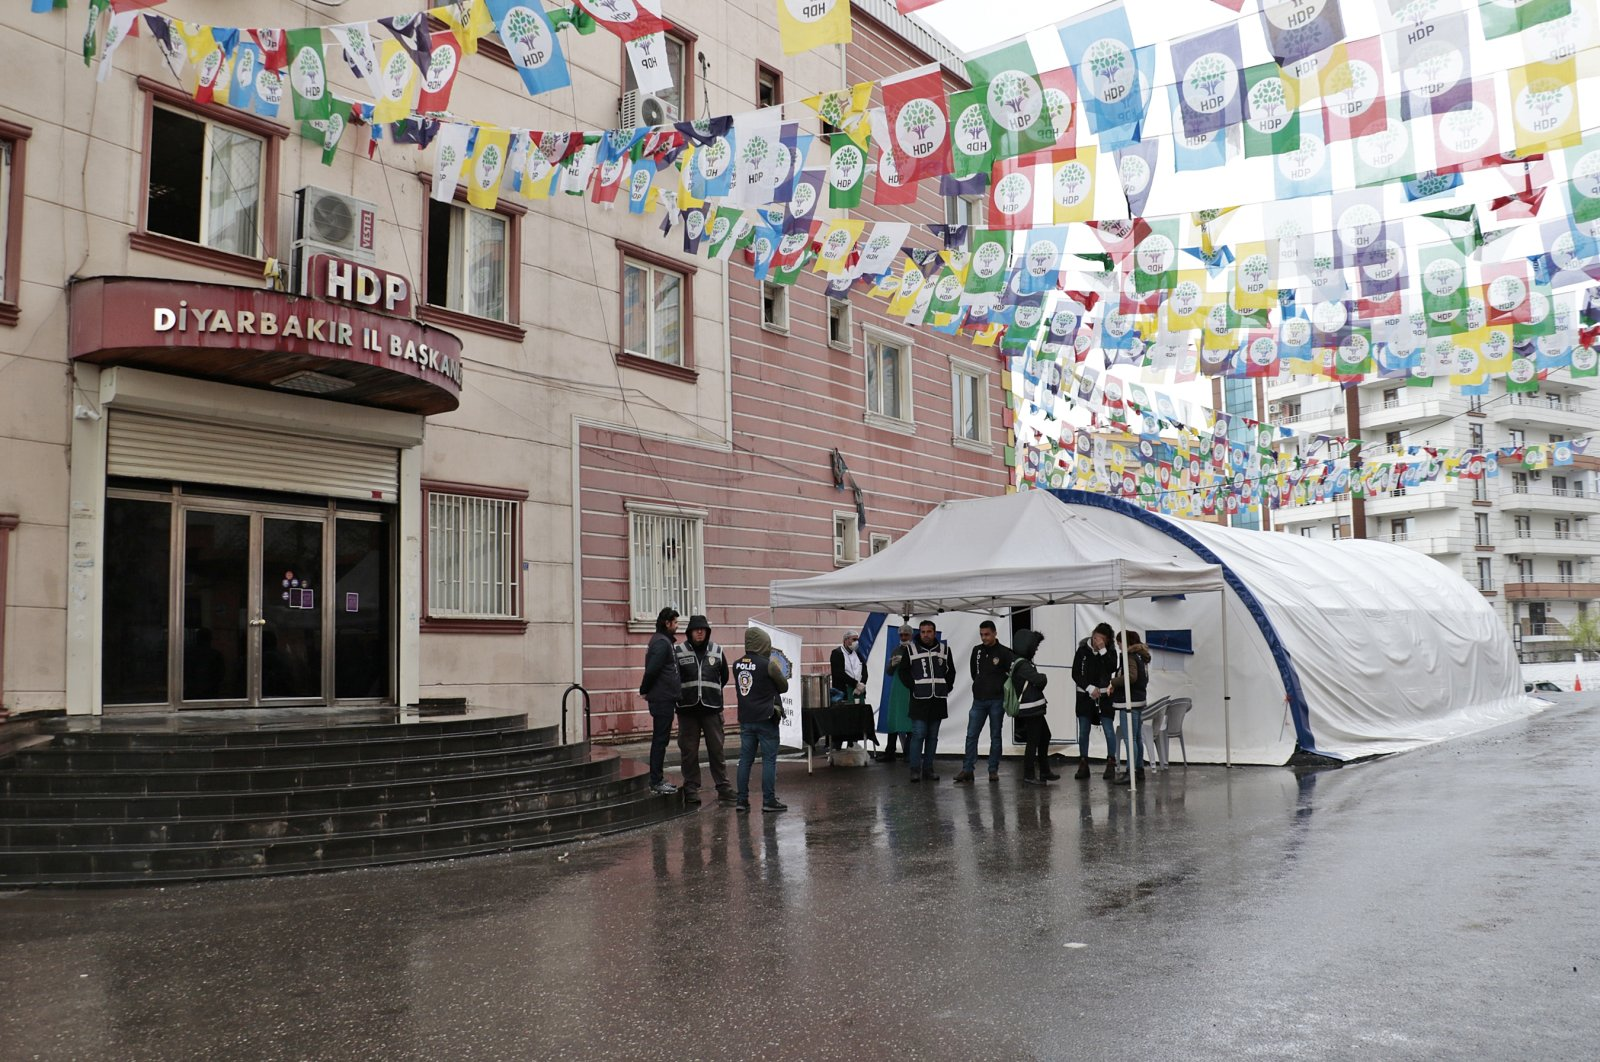 Kurdish families have been waiting in front of the HDP Diyarbakır building for 205 days to get back their children abducted by the PKK, March 25, 2020. (DHA Photo)